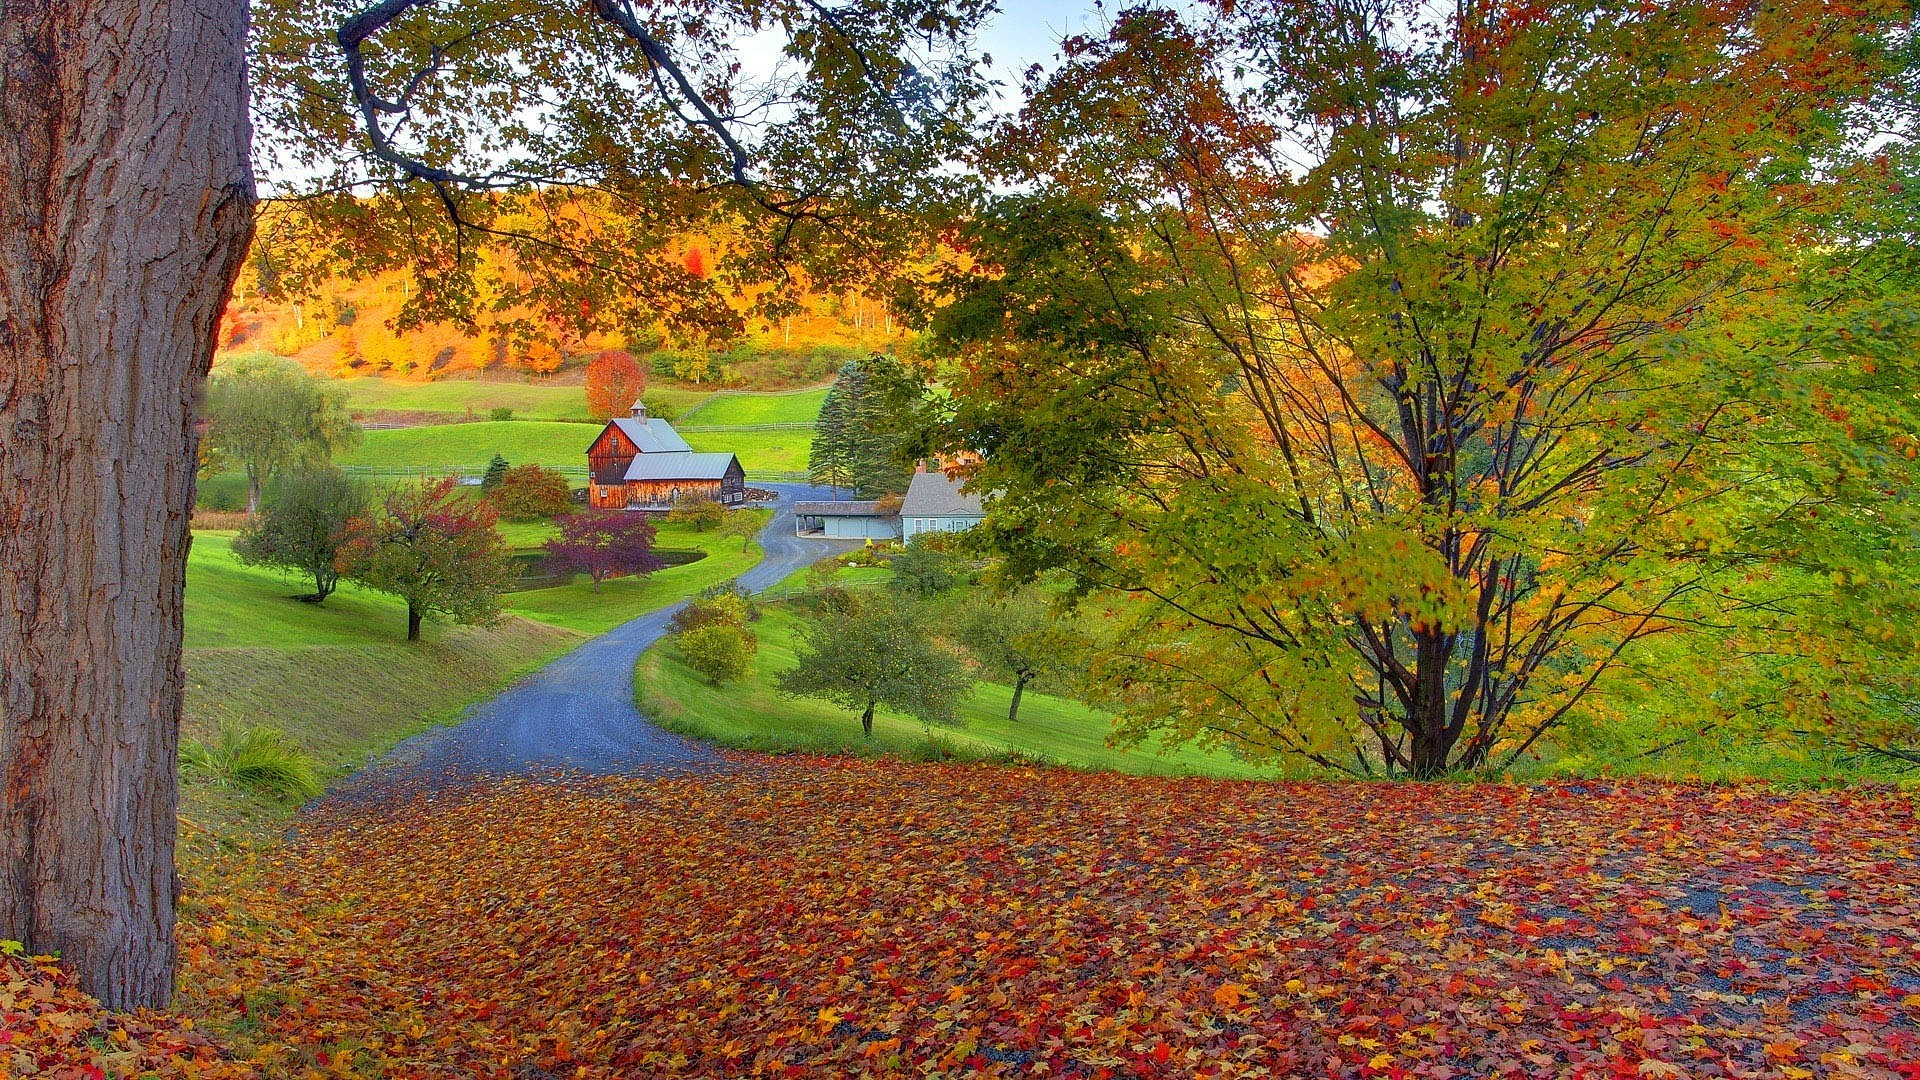 Michigan Fall Colors Wallpaper New England Fall Wallpaper 183 ①